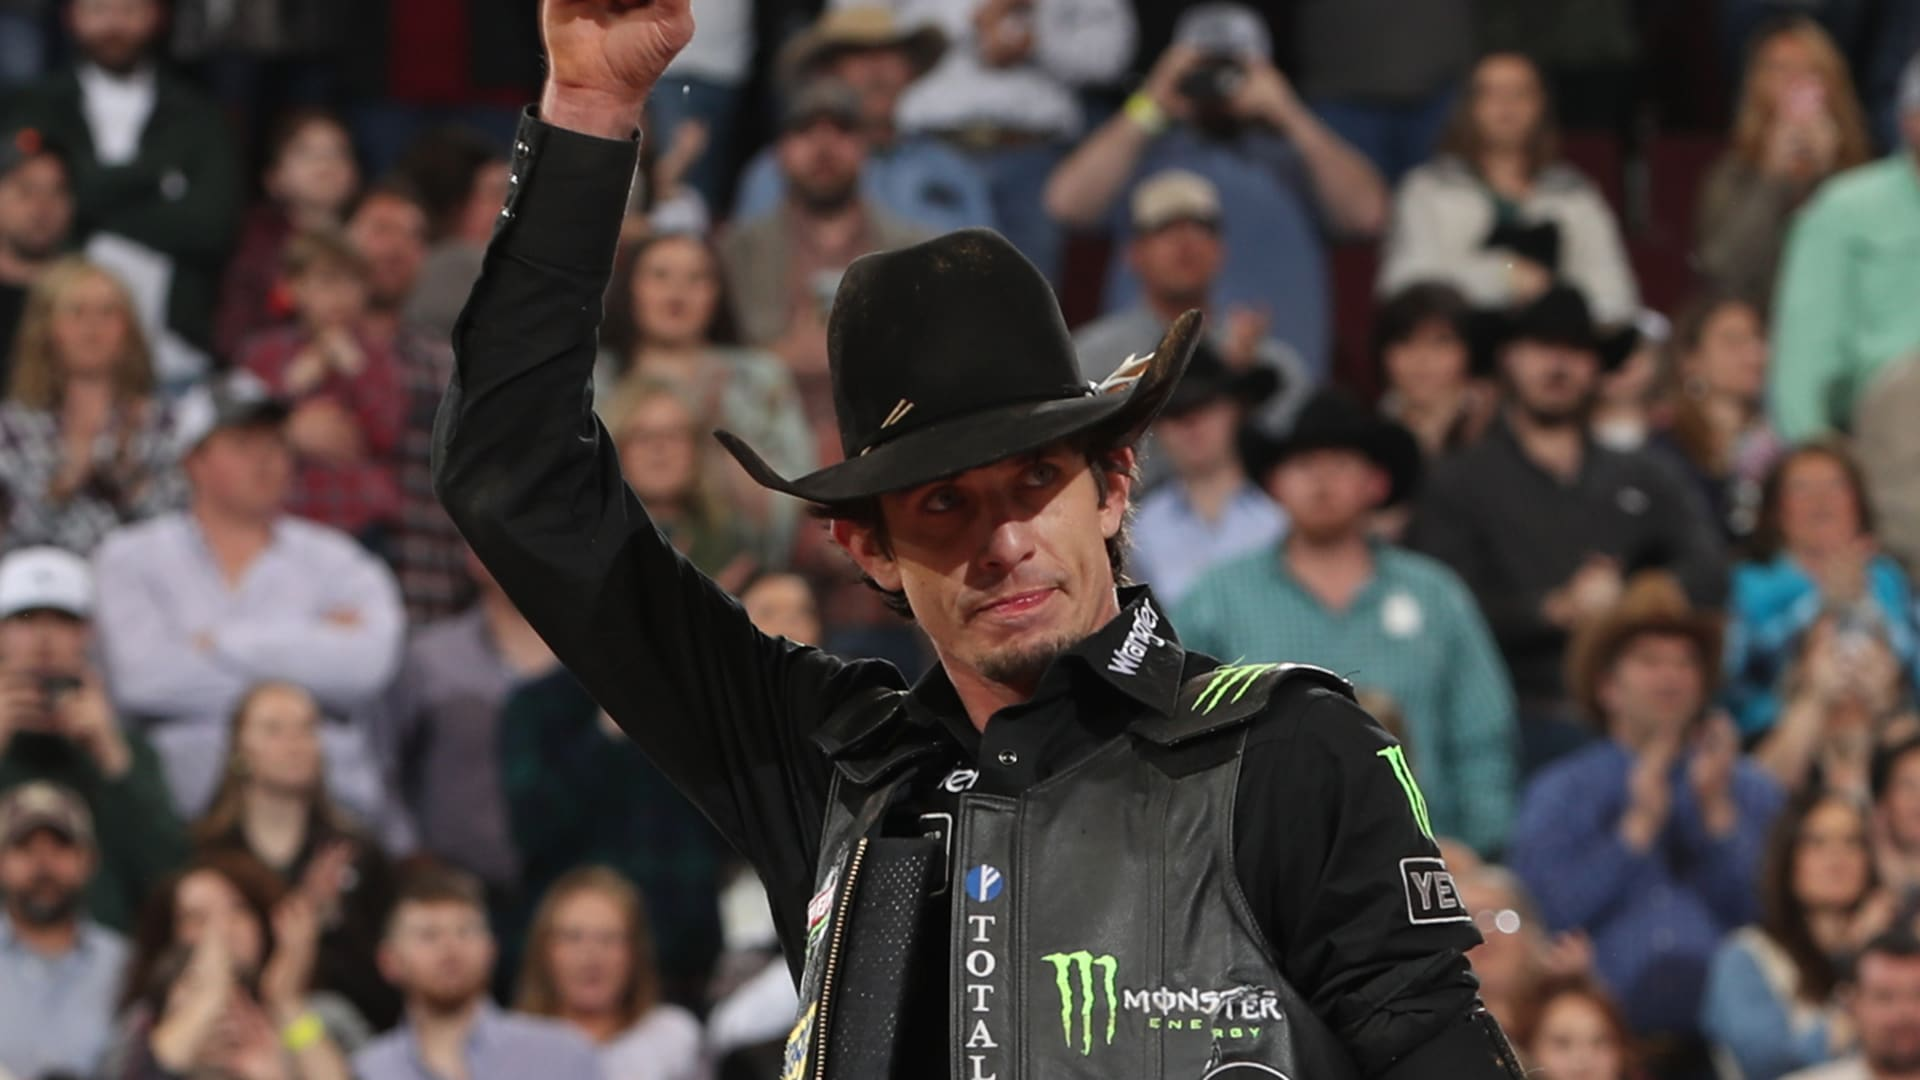 f36465800dd Two-time World Champion Mauney wins in unbelievable fashion in Little Rock